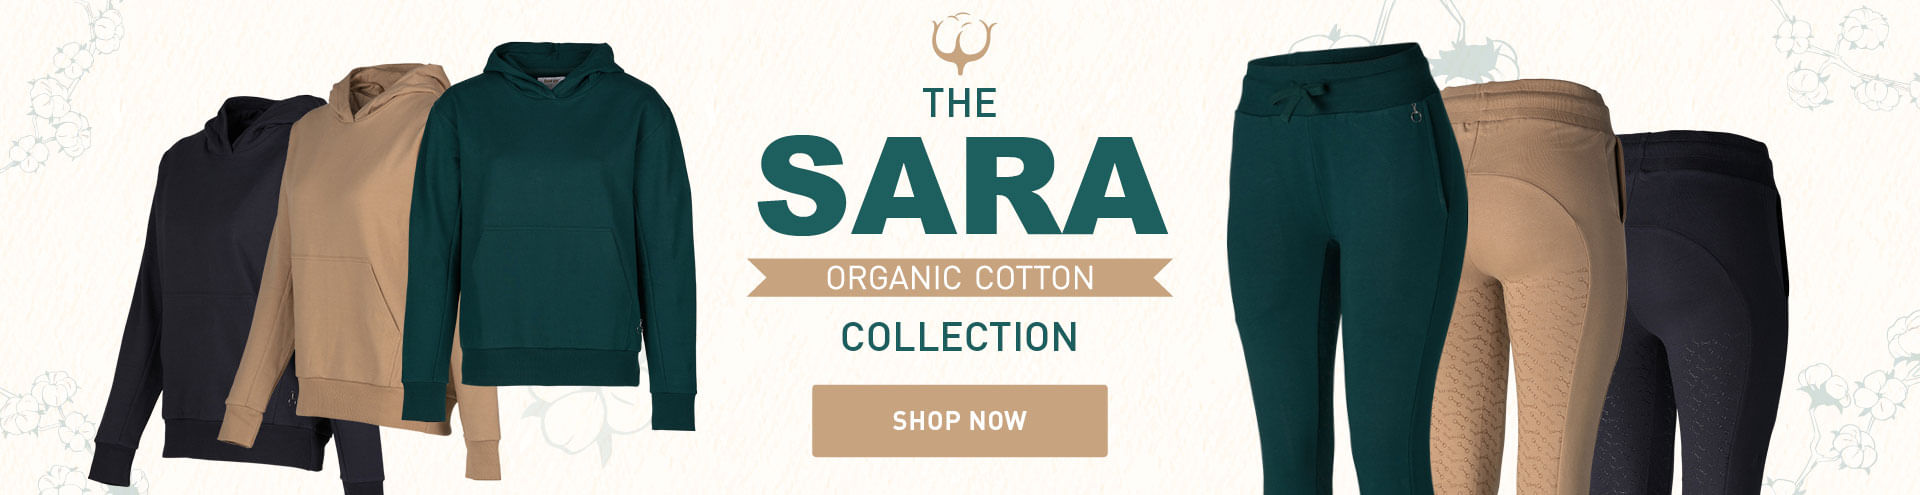 Equinavia Horze Sara Organic Cotton Riding tights and Hoodie collection